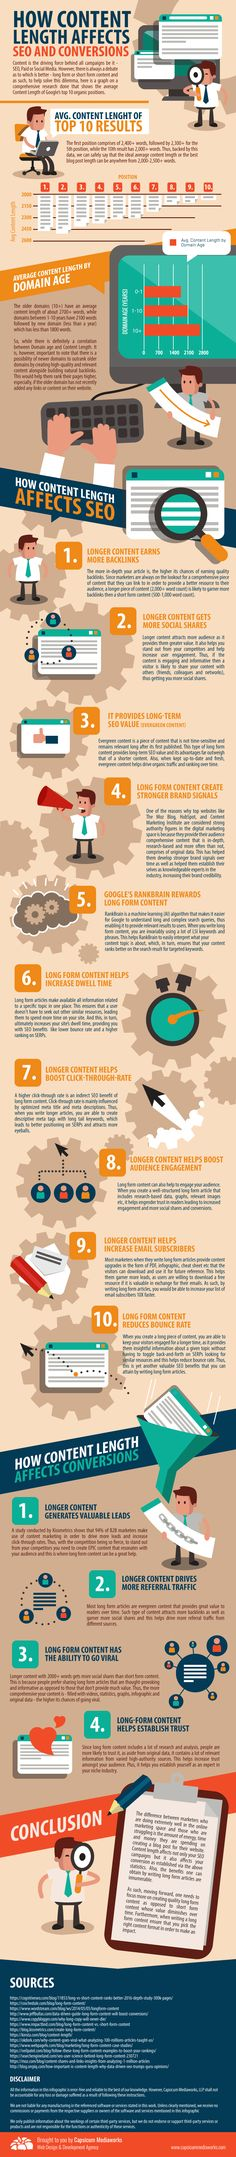 What Is The Ideal Content Length? How It Affects SEO [Infographic] Without well-written and engaging content, chances of you catching the eye of your target audience are quite slim Content is the key factor when it comes. Sales And Marketing, Content Marketing, Internet Marketing, Online Marketing, Digital Marketing, Media Marketing, Visualisation, Data Visualization, Website Ranking